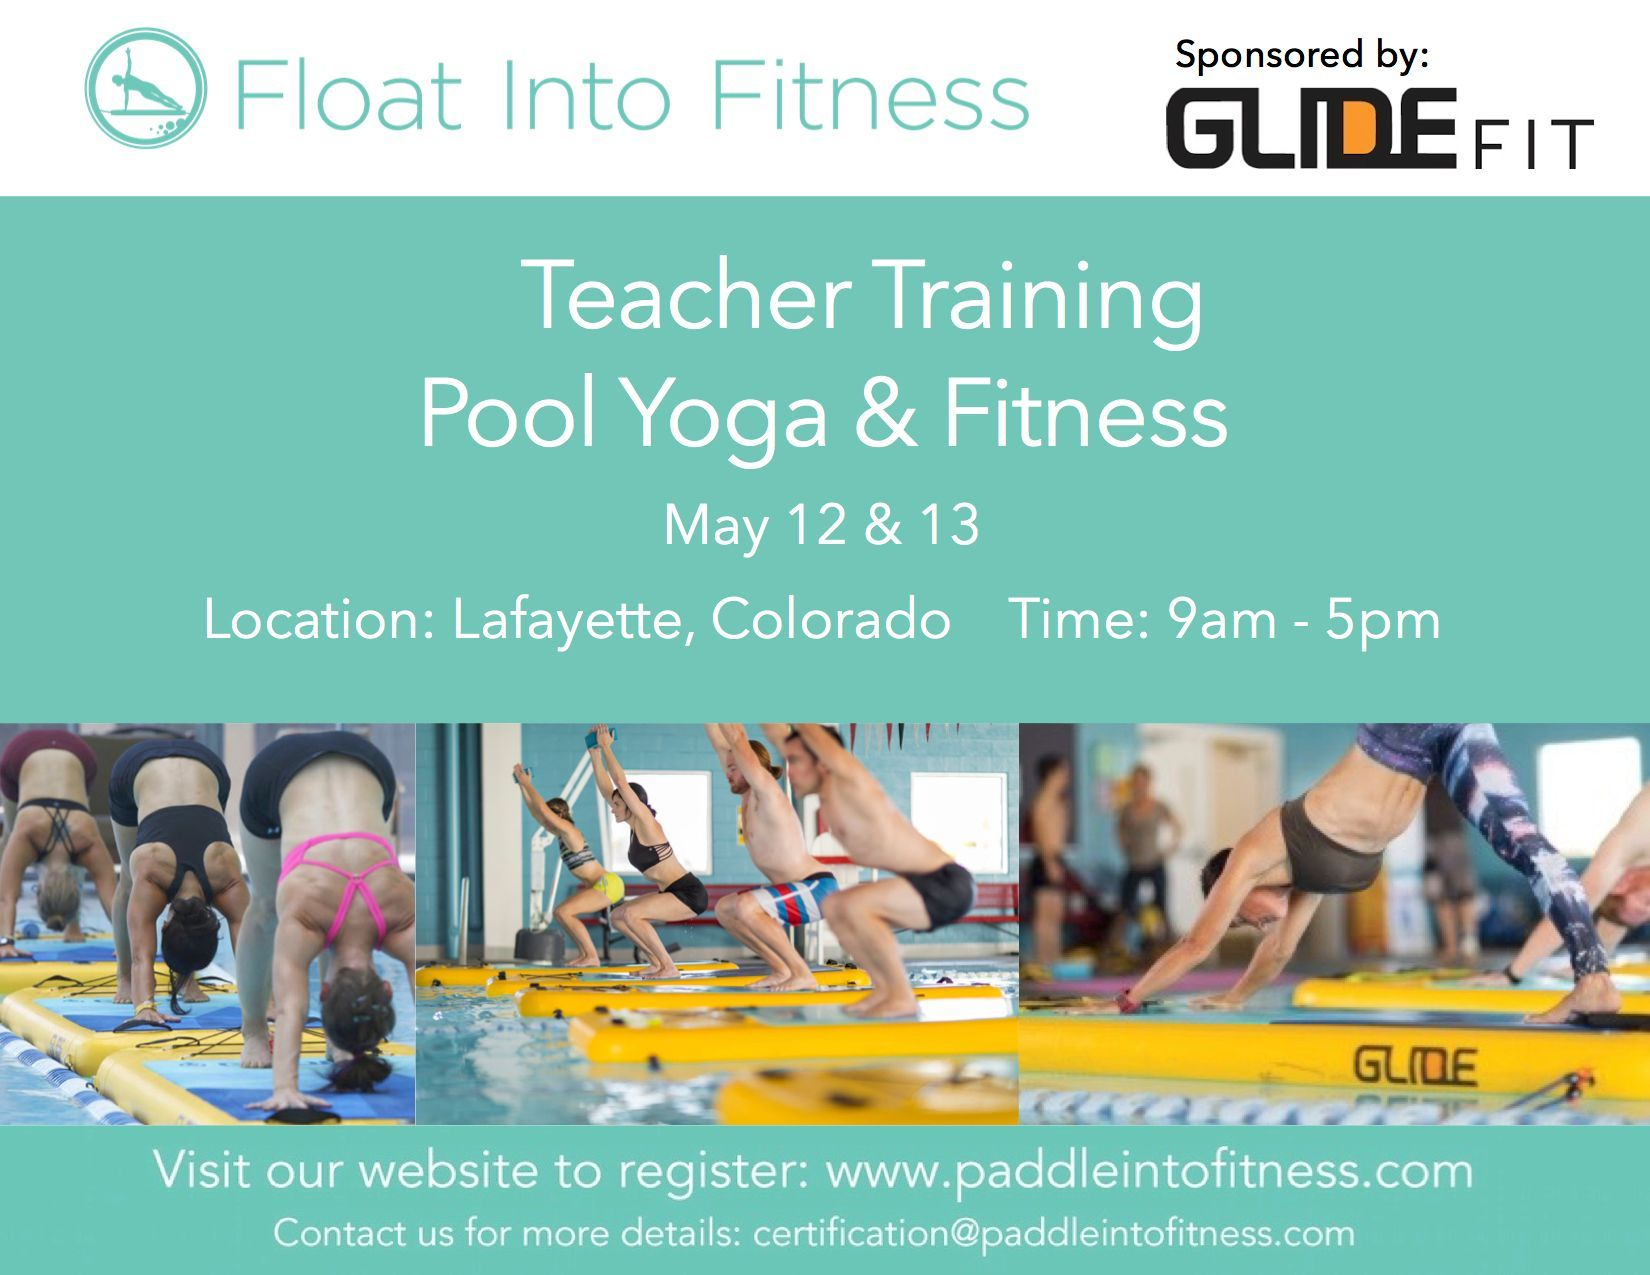 Registration is now open for our float into fitness pool teacher registration is now open for our float into fitness pool teacher certification in colorado two days of dynamic pool yoga and fitness training 1betcityfo Gallery